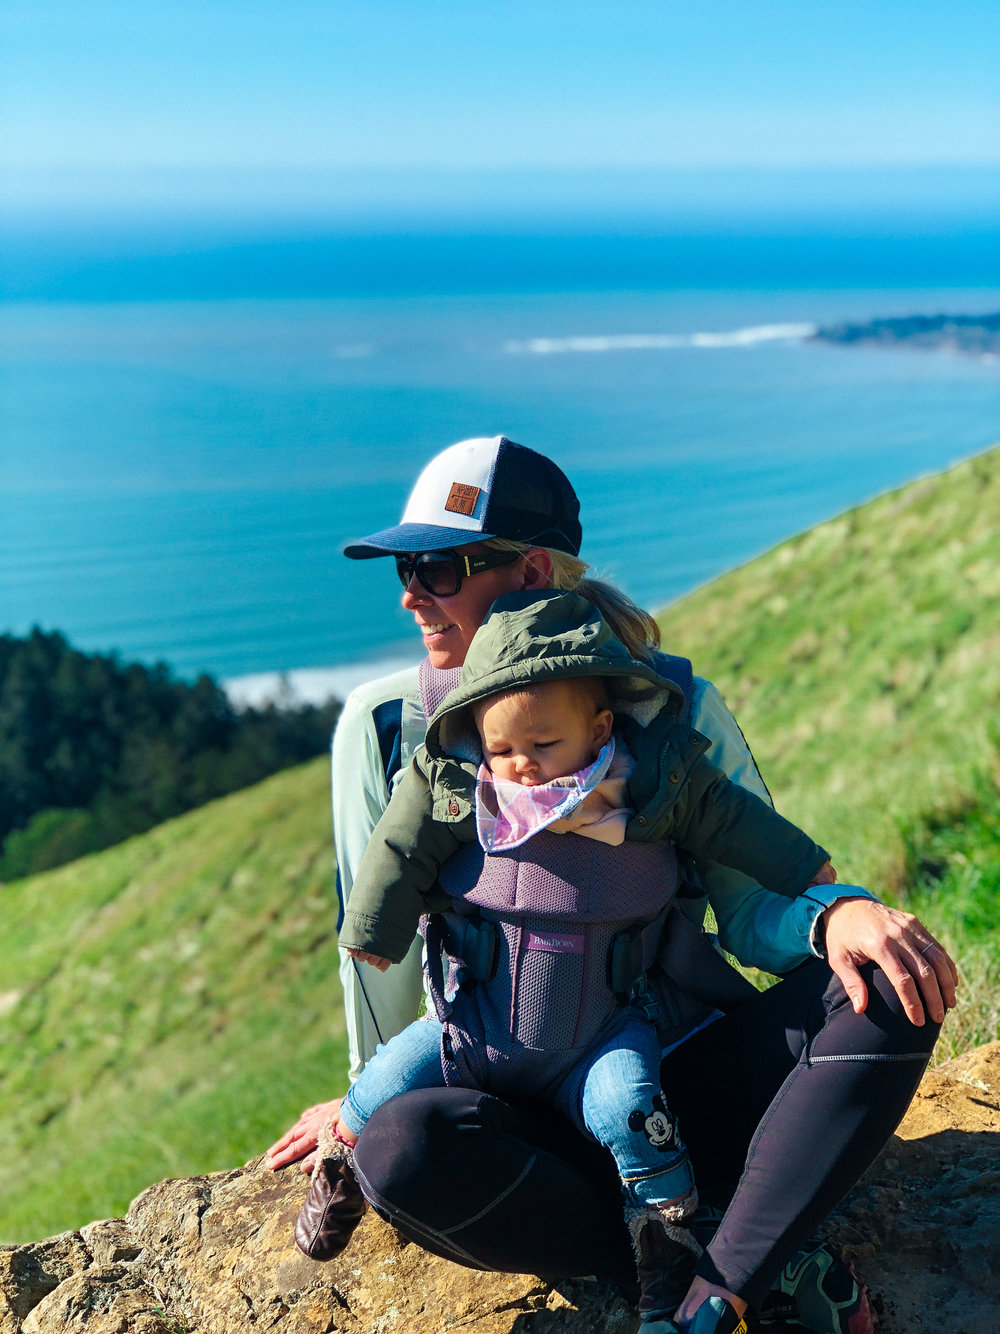 Mount Tamalpias Family Hike family time quality time travel summer hiking activity fit mom